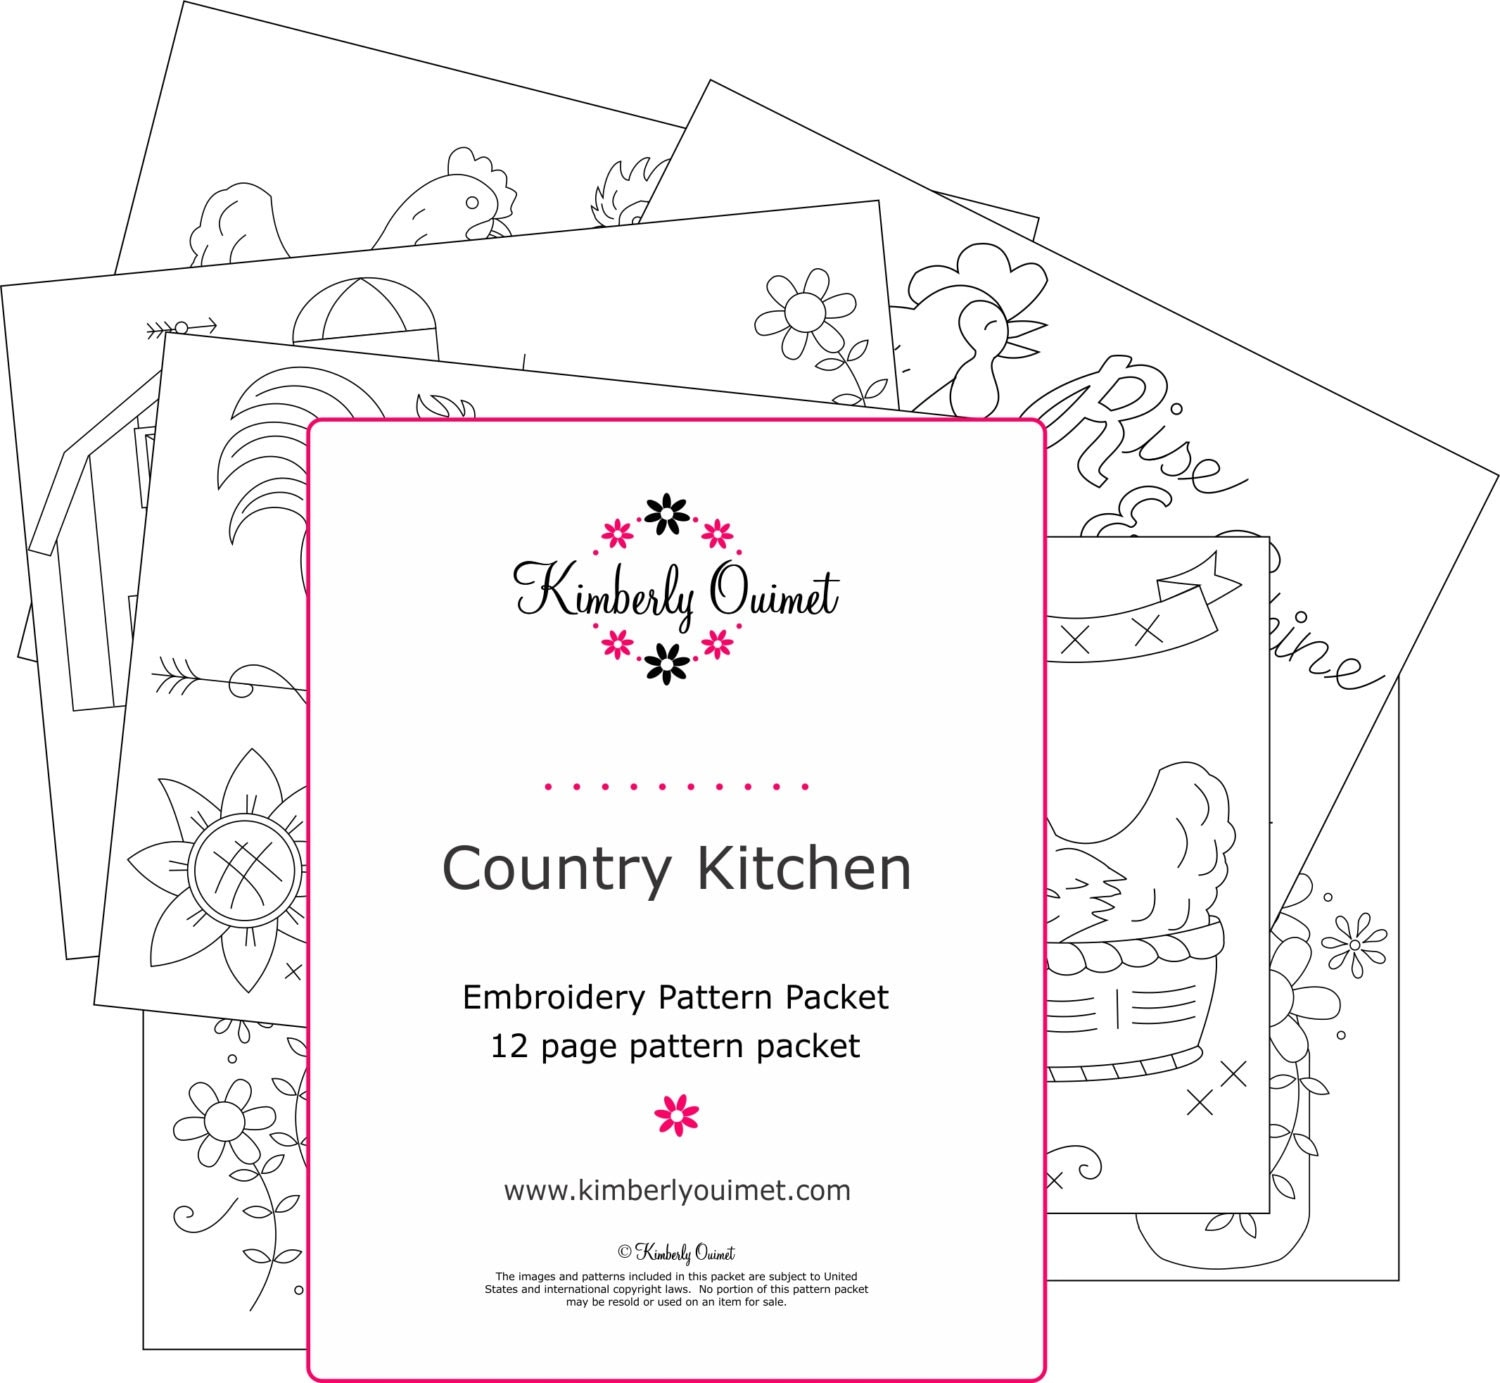 Country Kitchen International Country Kitchen Embroidery Design Farm Kitchen Theme Hand